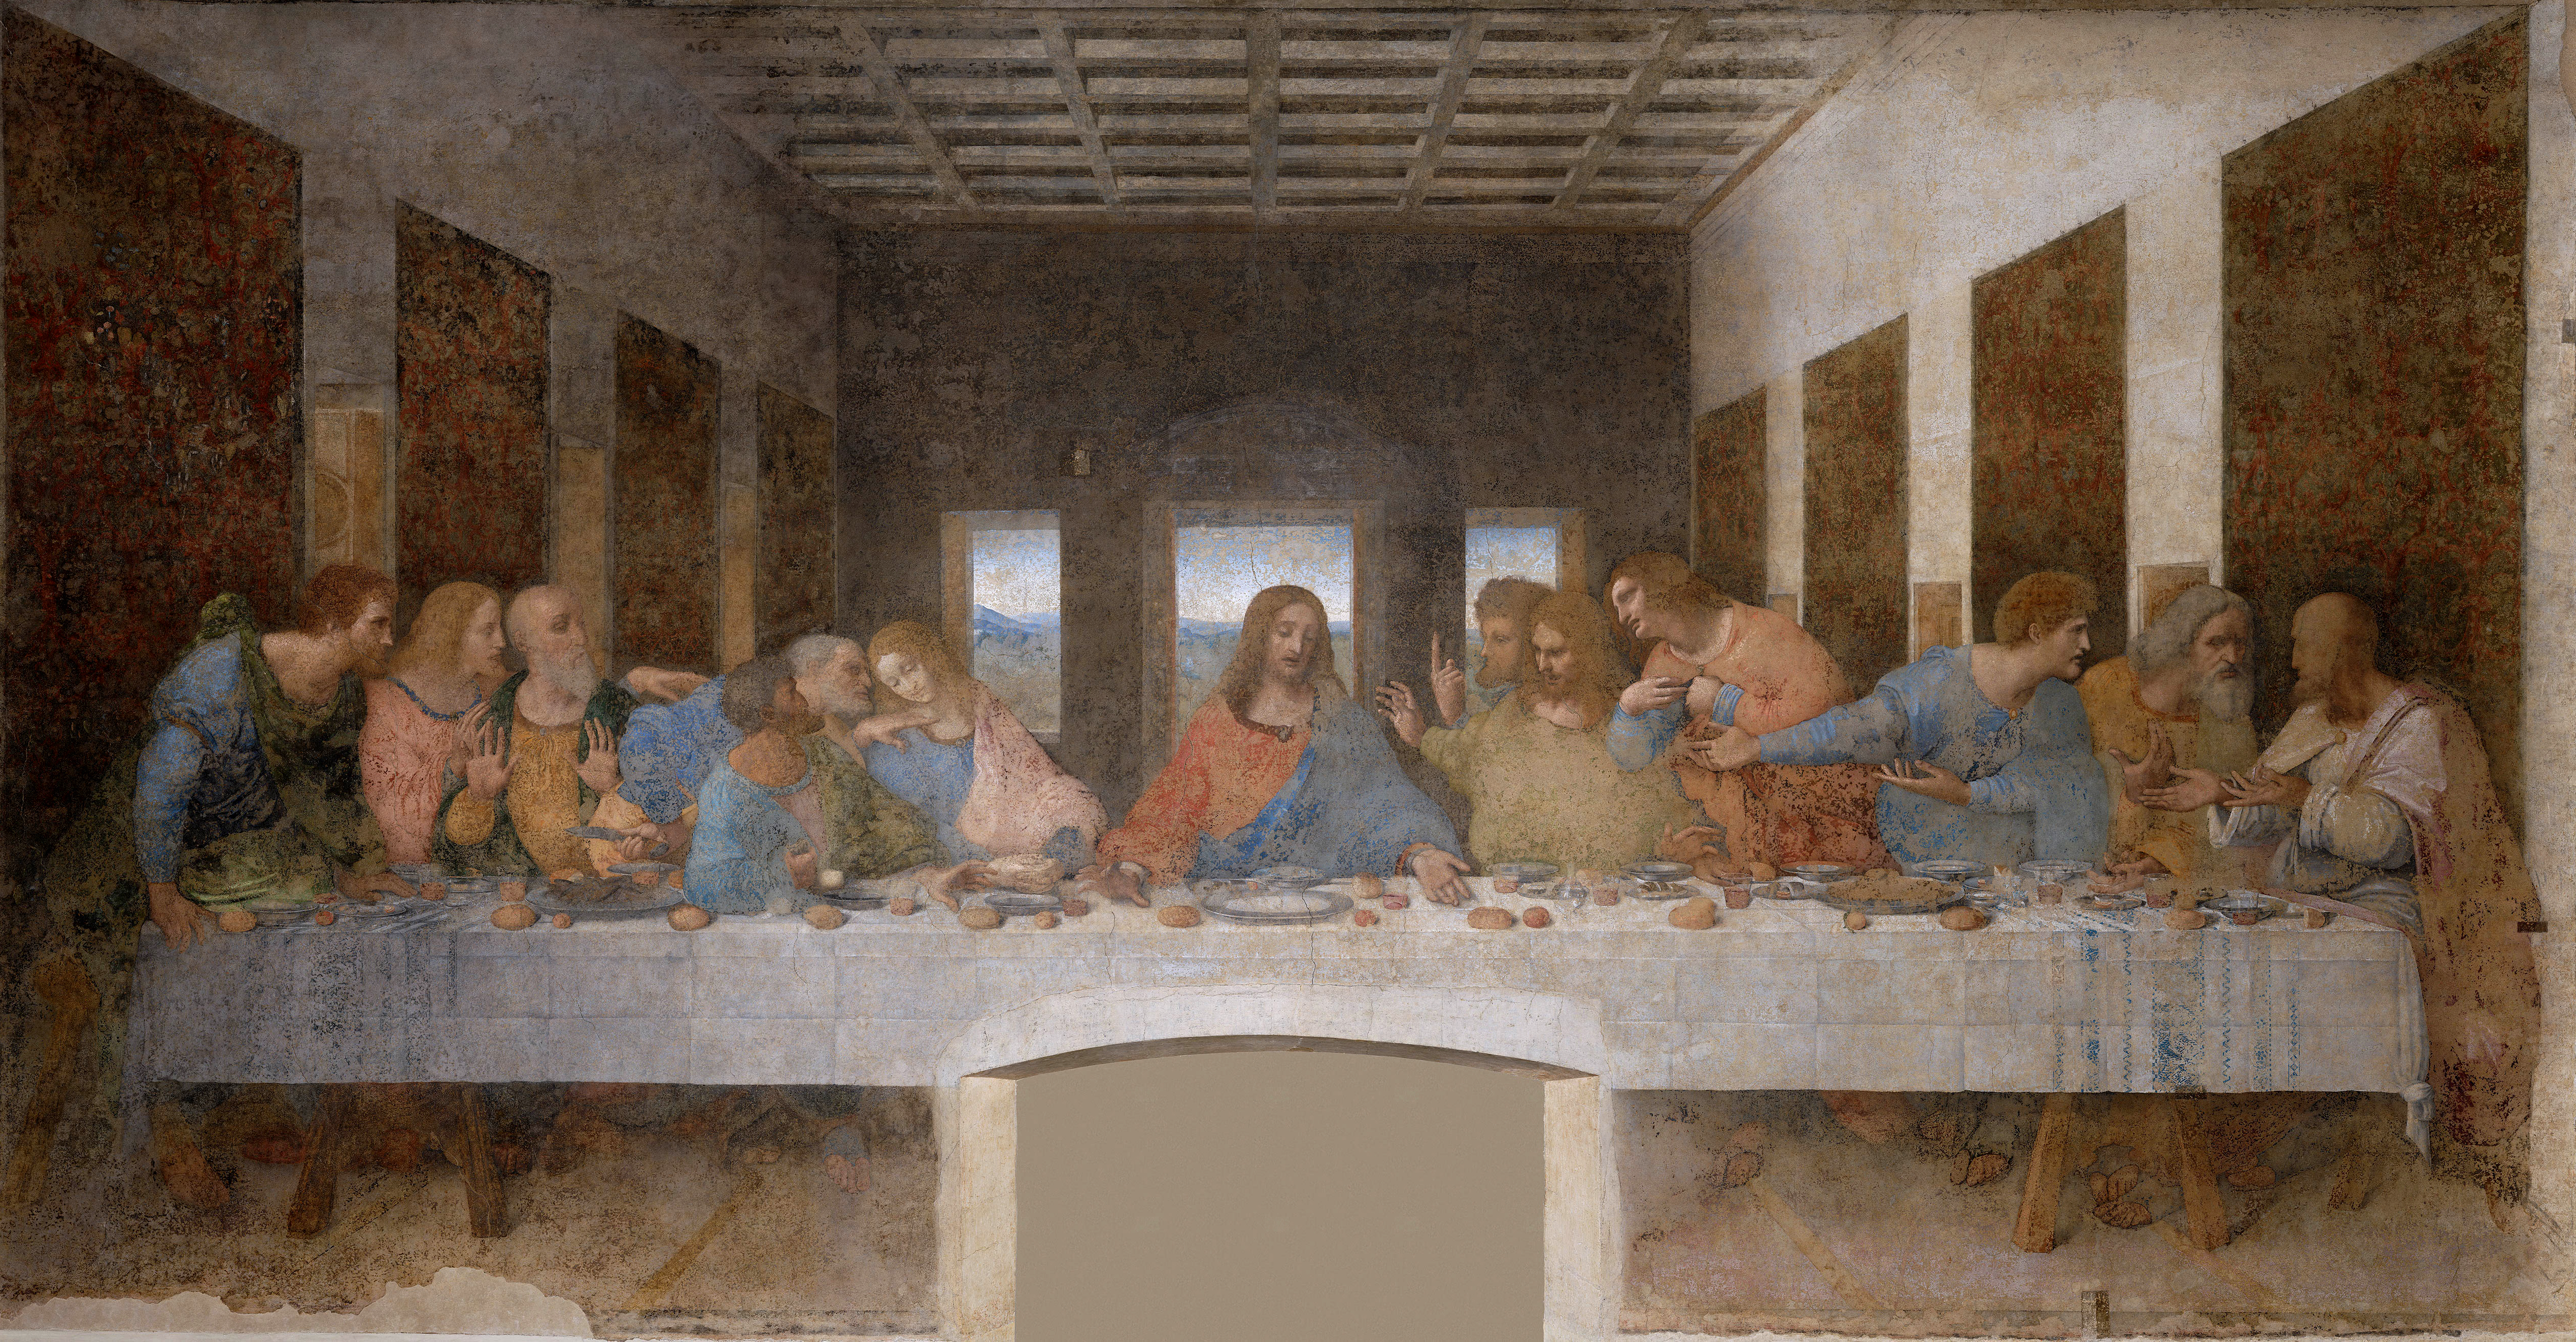 The Last Supper by Leonardo da Vinci in the Church of Santa Maria delle Grazie, Milan